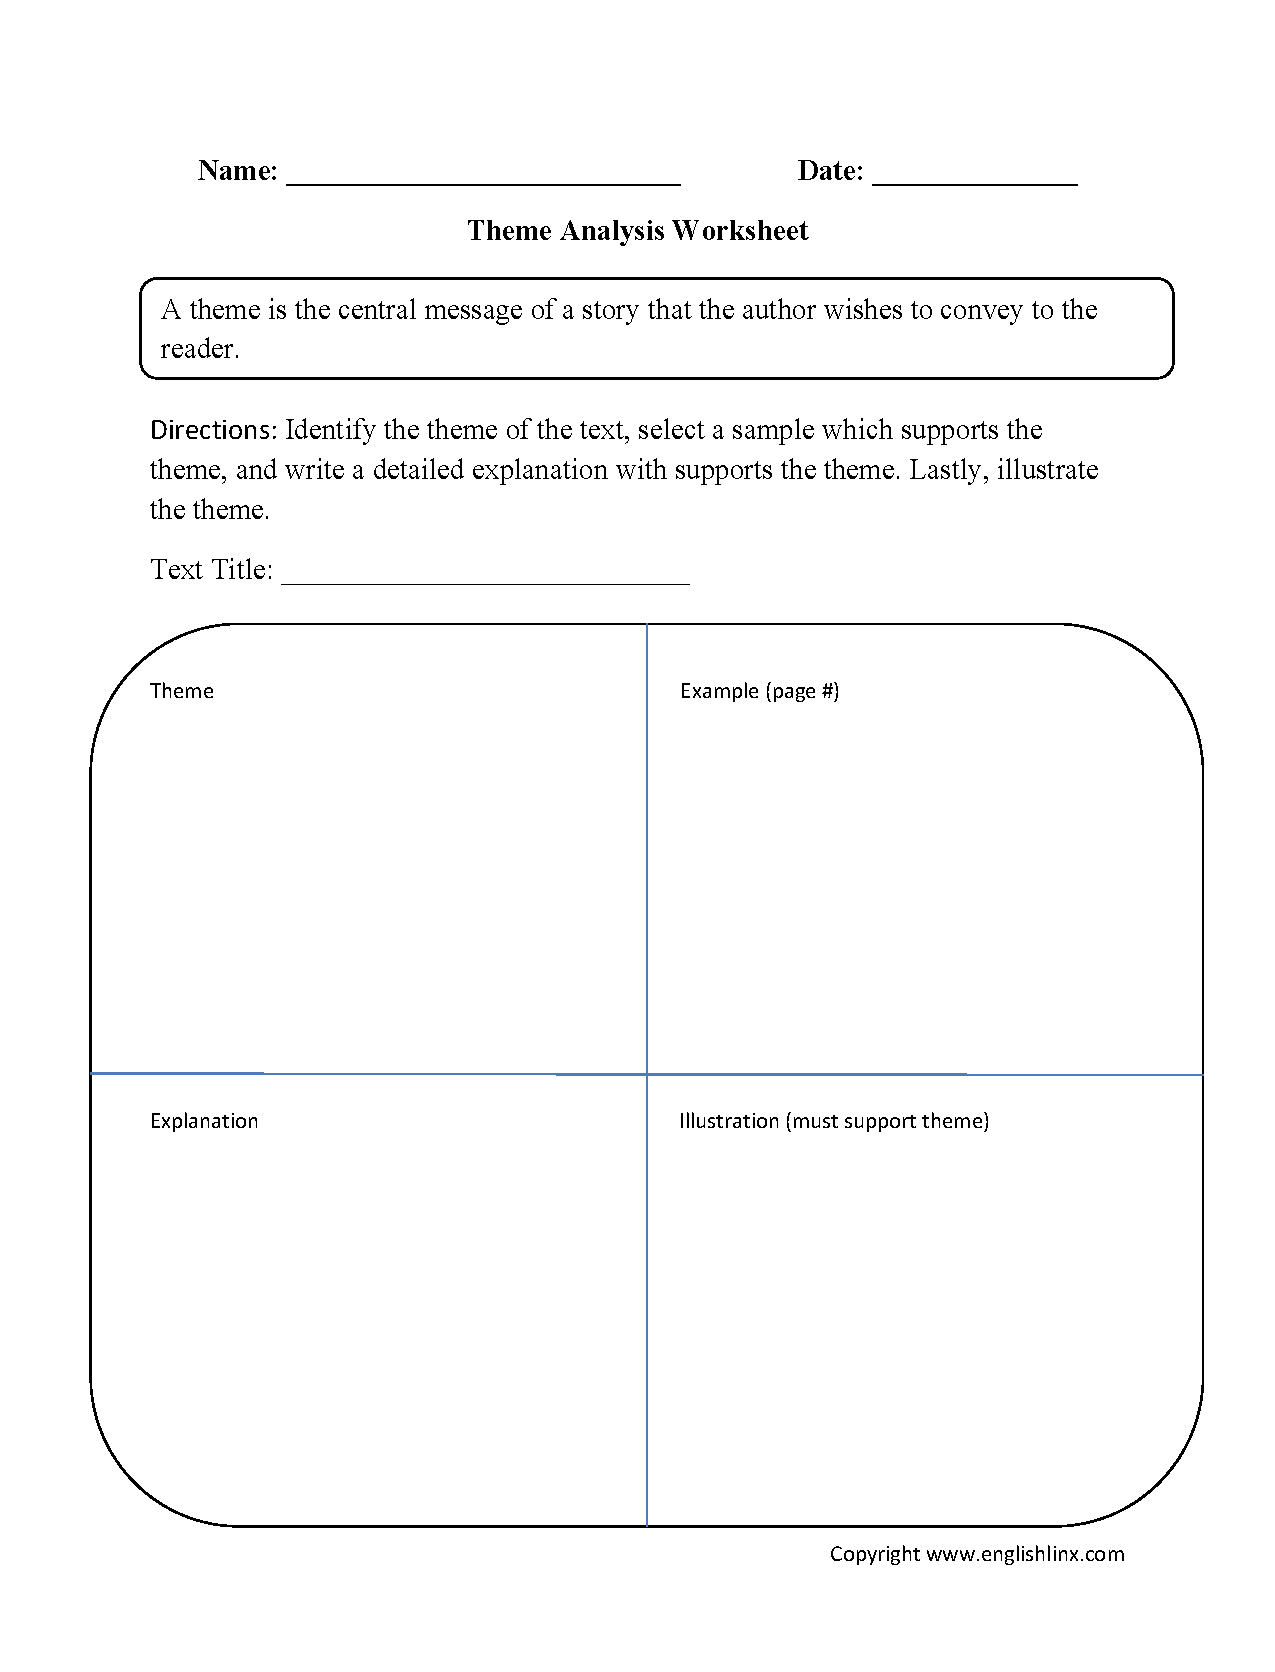 Themeysis Worksheet Education